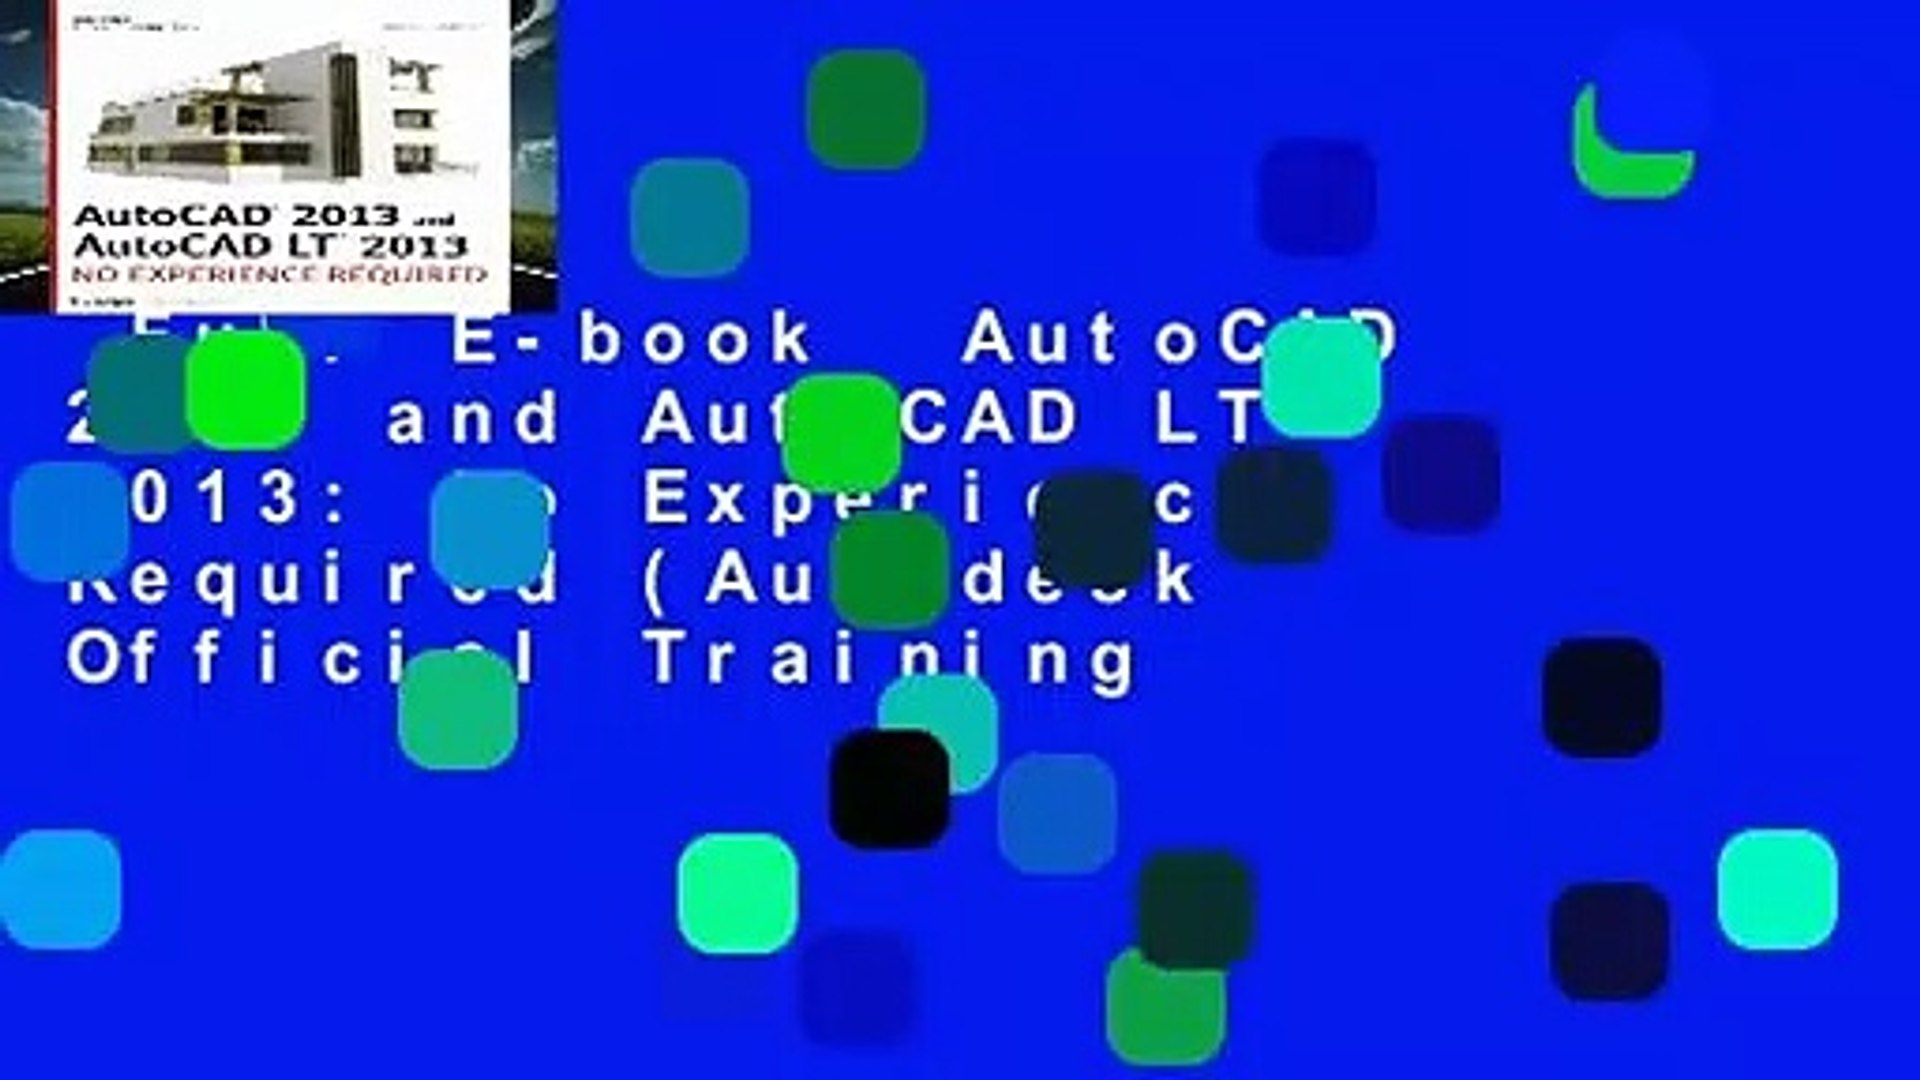 Full E-book  AutoCAD 2013 and AutoCAD LT 2013: No Experience Required (Autodesk Official Training